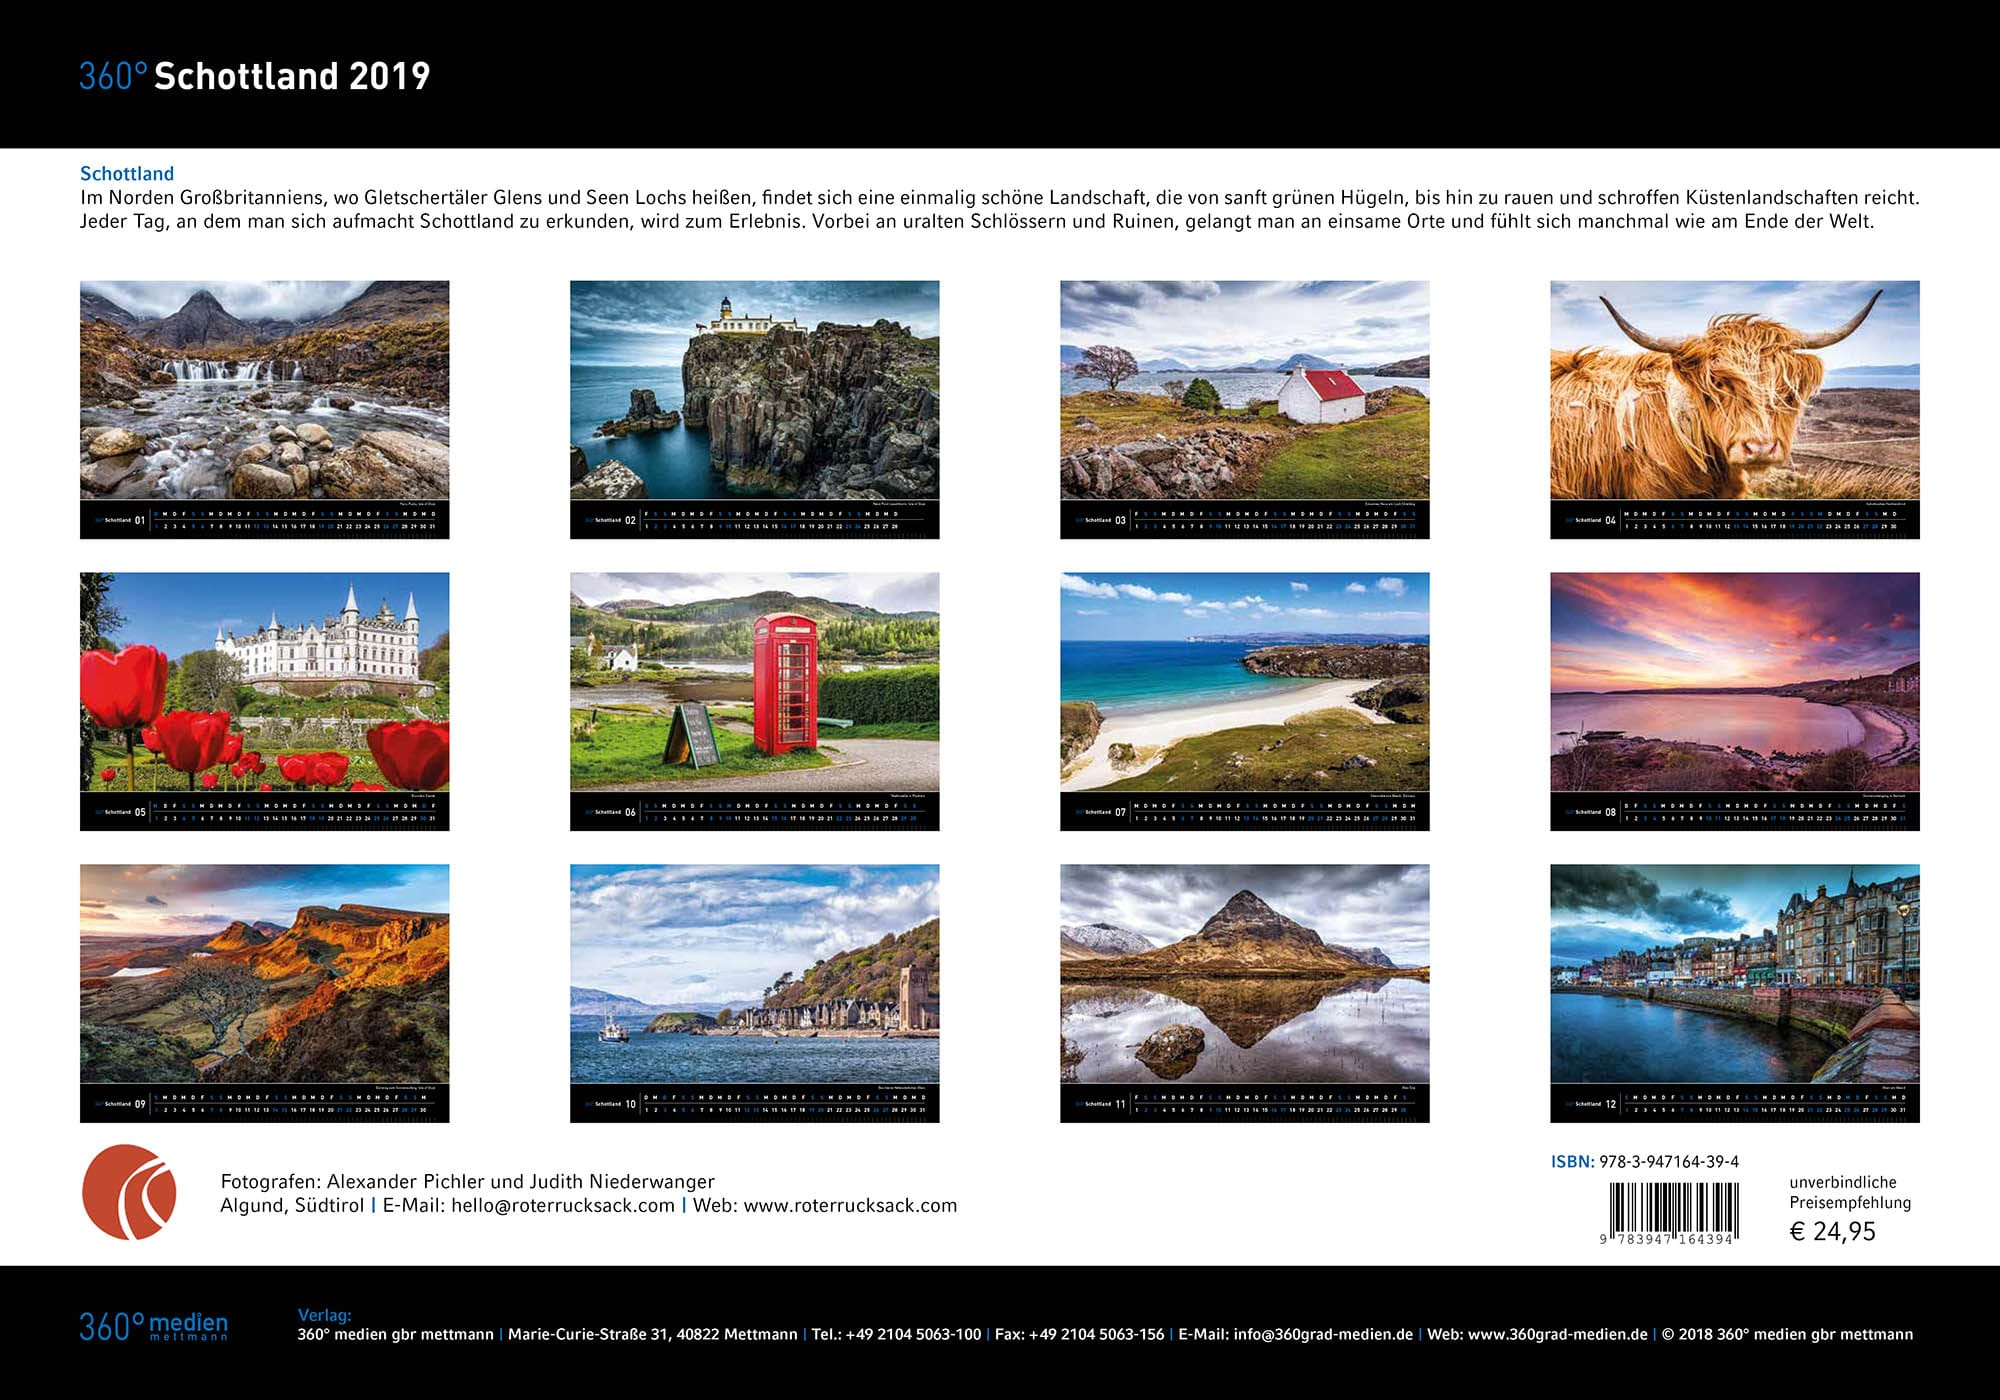 schottland kalender 2019 reisen wandern fotografieren. Black Bedroom Furniture Sets. Home Design Ideas